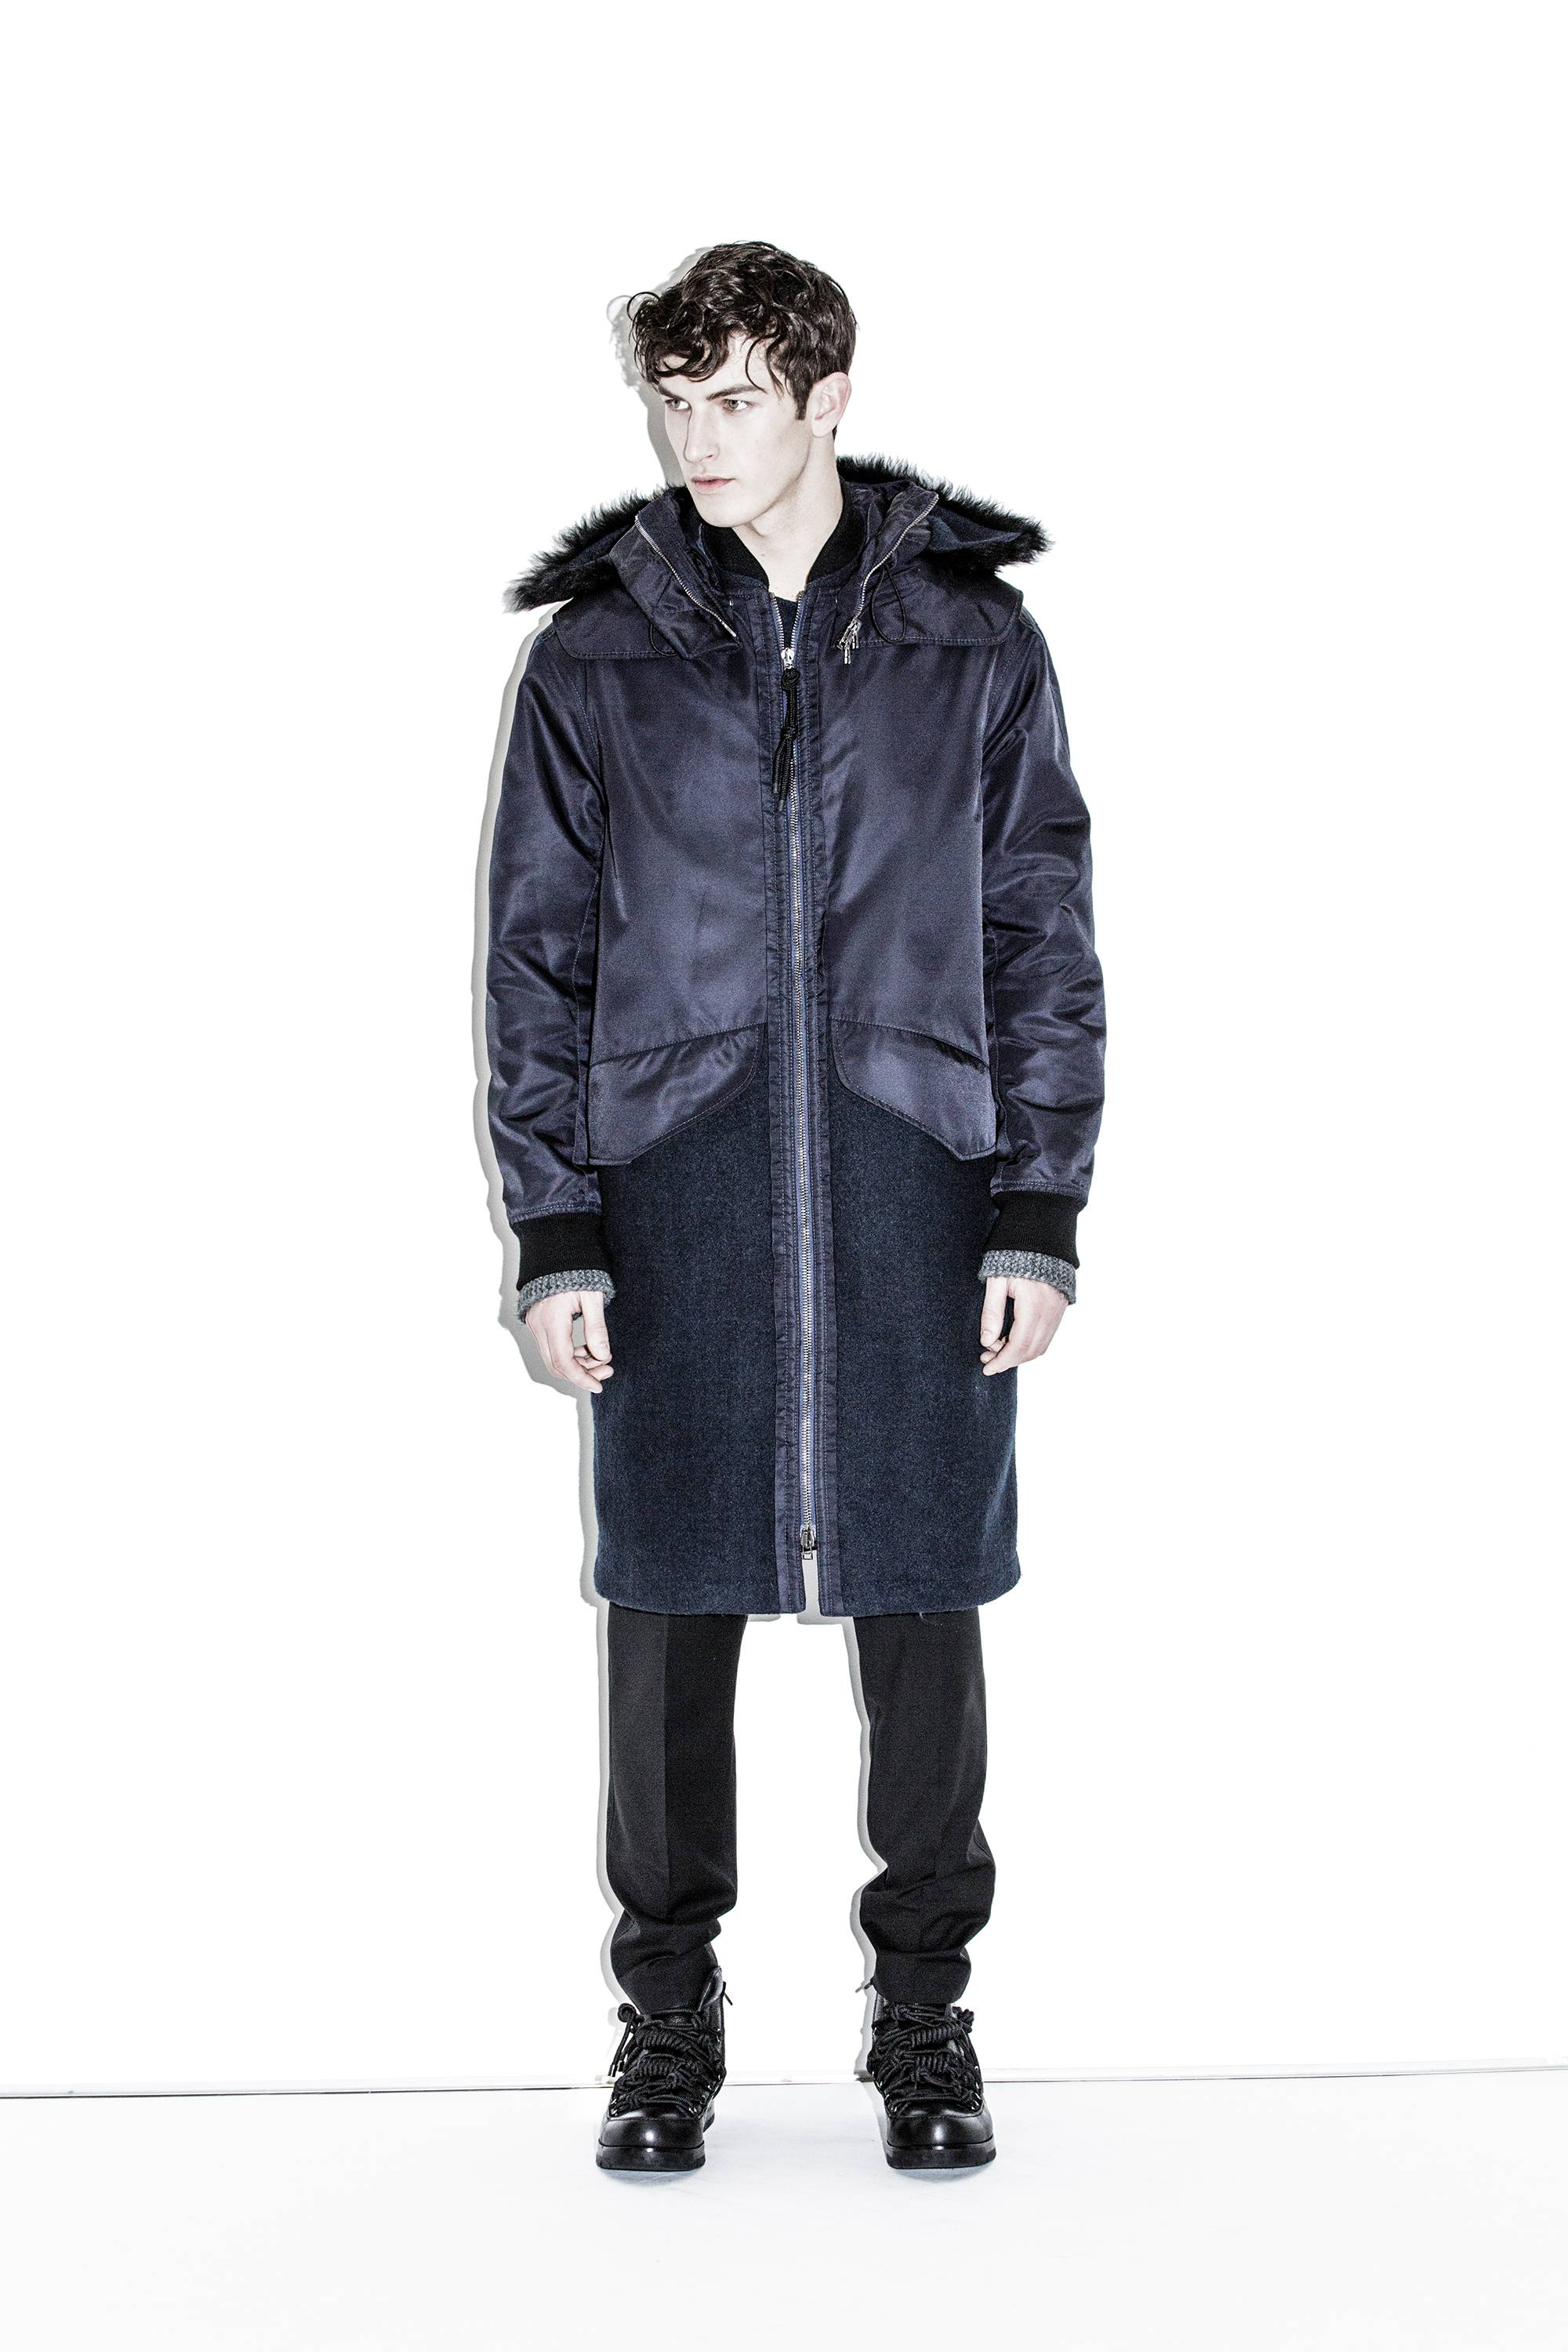 http://31philliplim.jp/